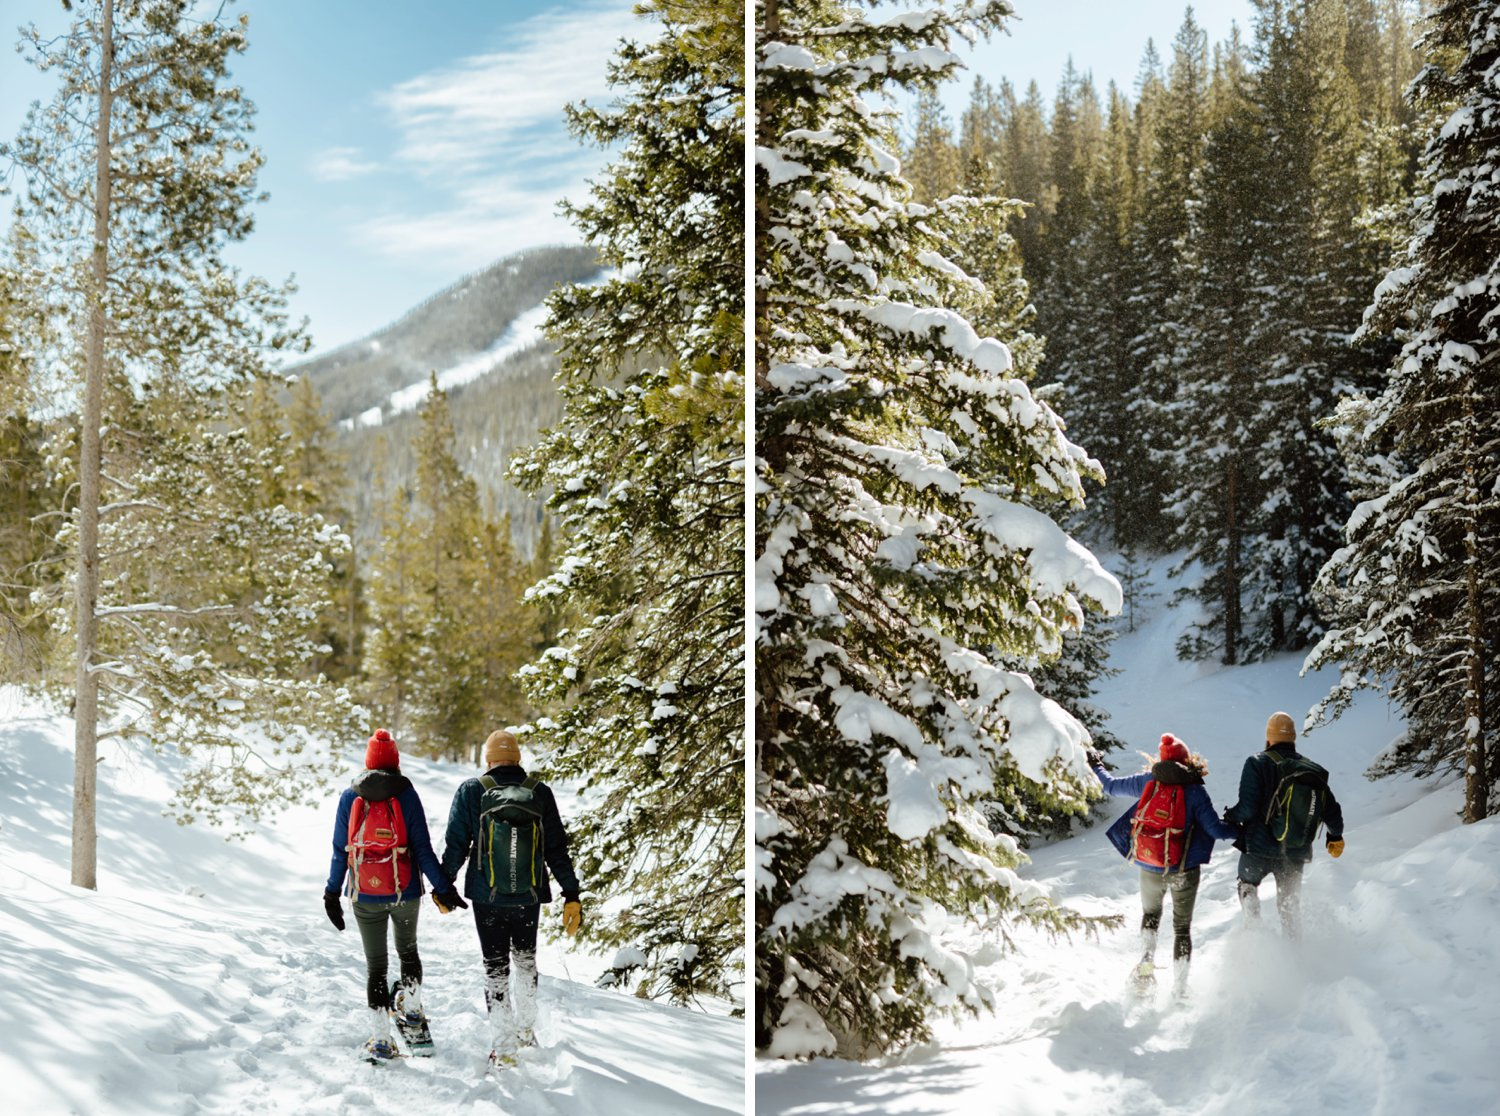 """I never would've thought to do such an intimate and adventurous engagement photoshoot! What a great idea to go snowshoeing in the mountains with an adventurous engagement photographer before you say """"I Do""""!